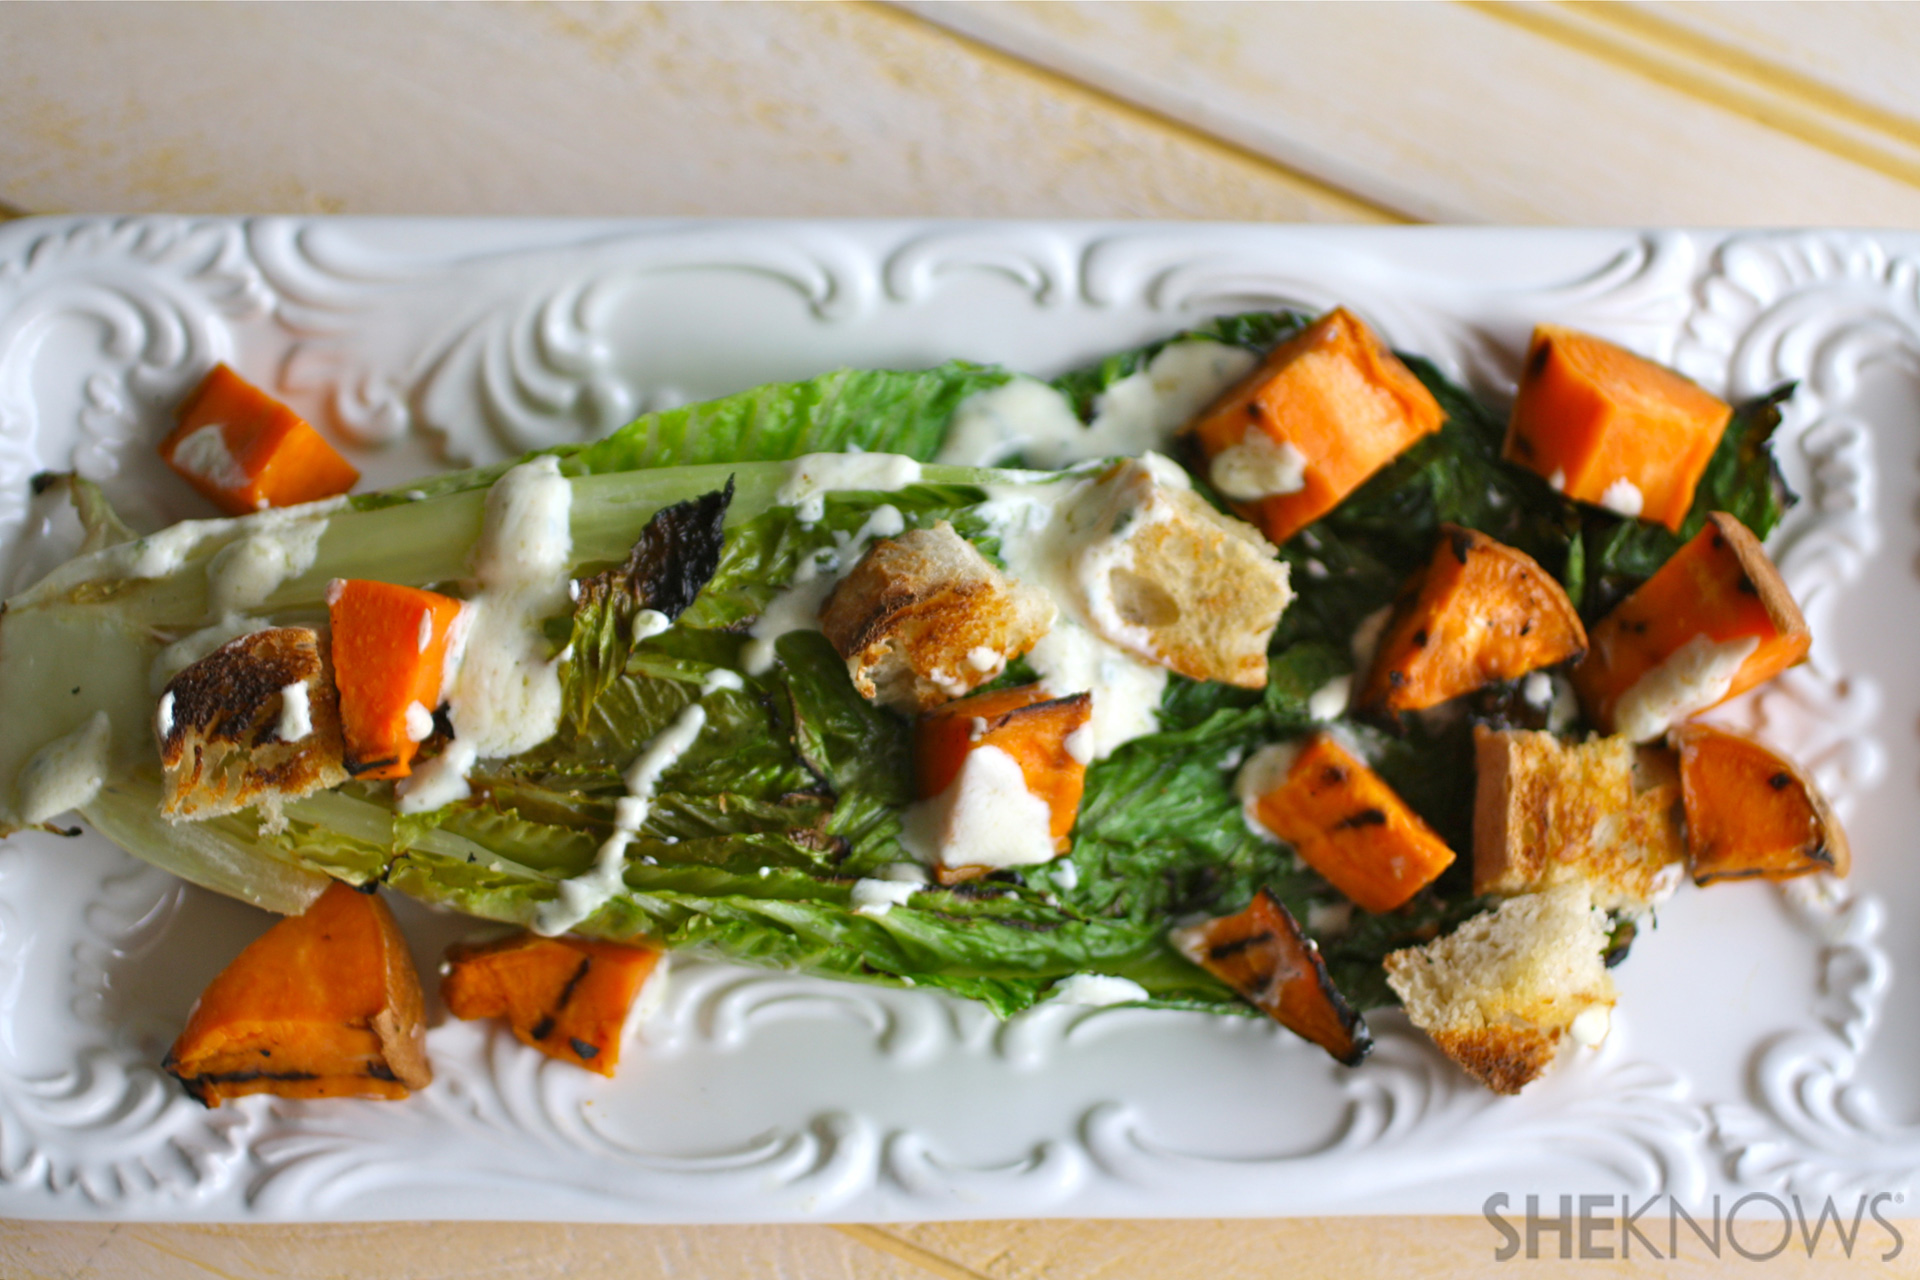 Grilled Romaine and sweet potato salad with creamy cilantro dressing